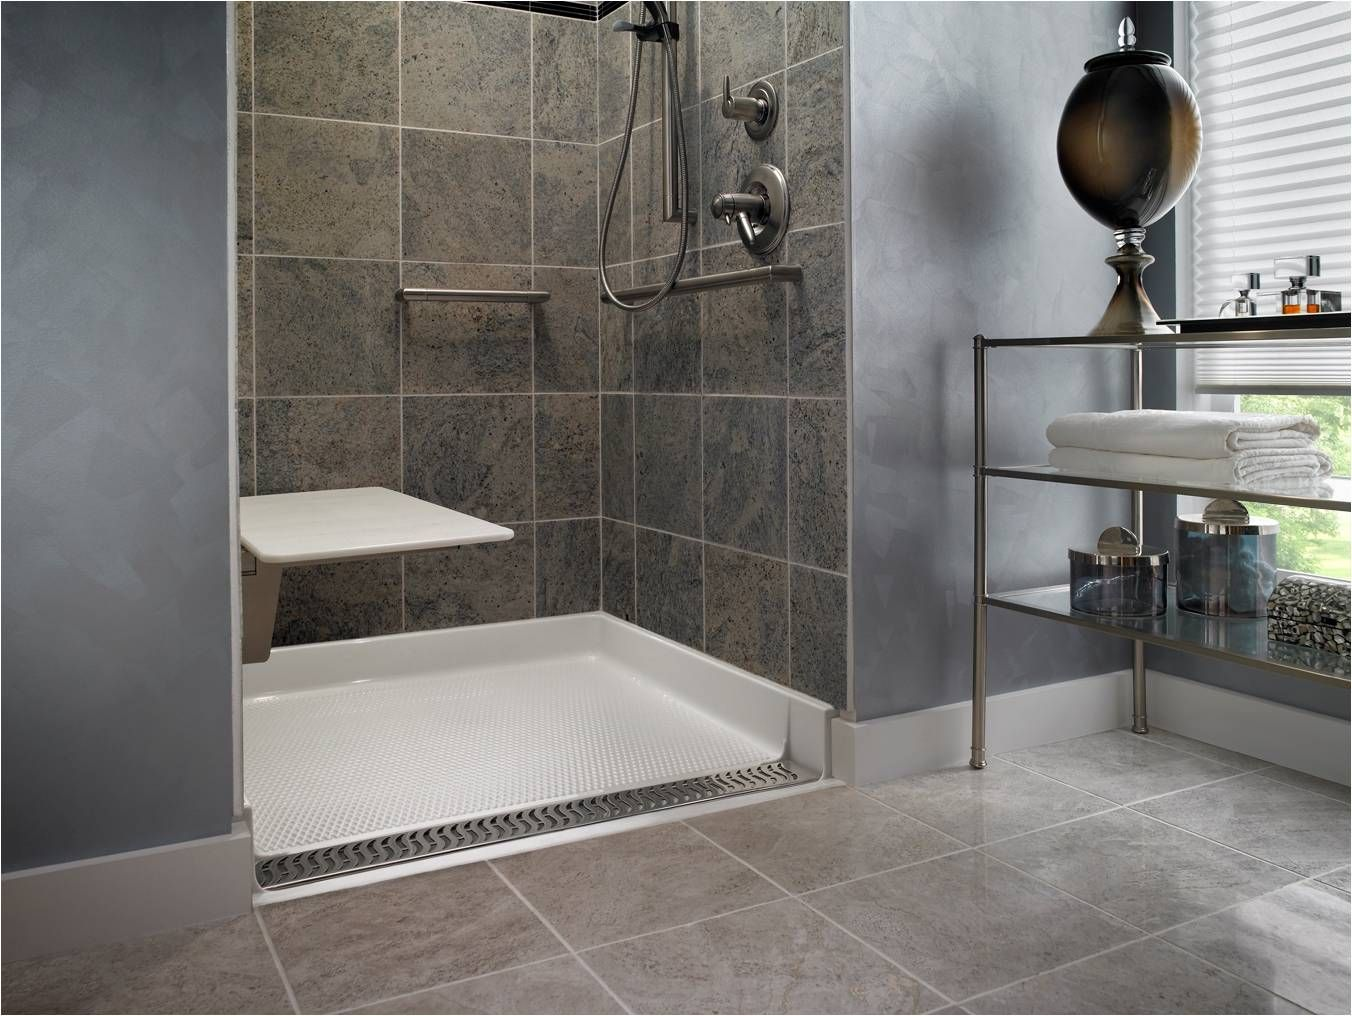 Tile Zero Threshold Shower #UniversalDesignTips >> Learn ...